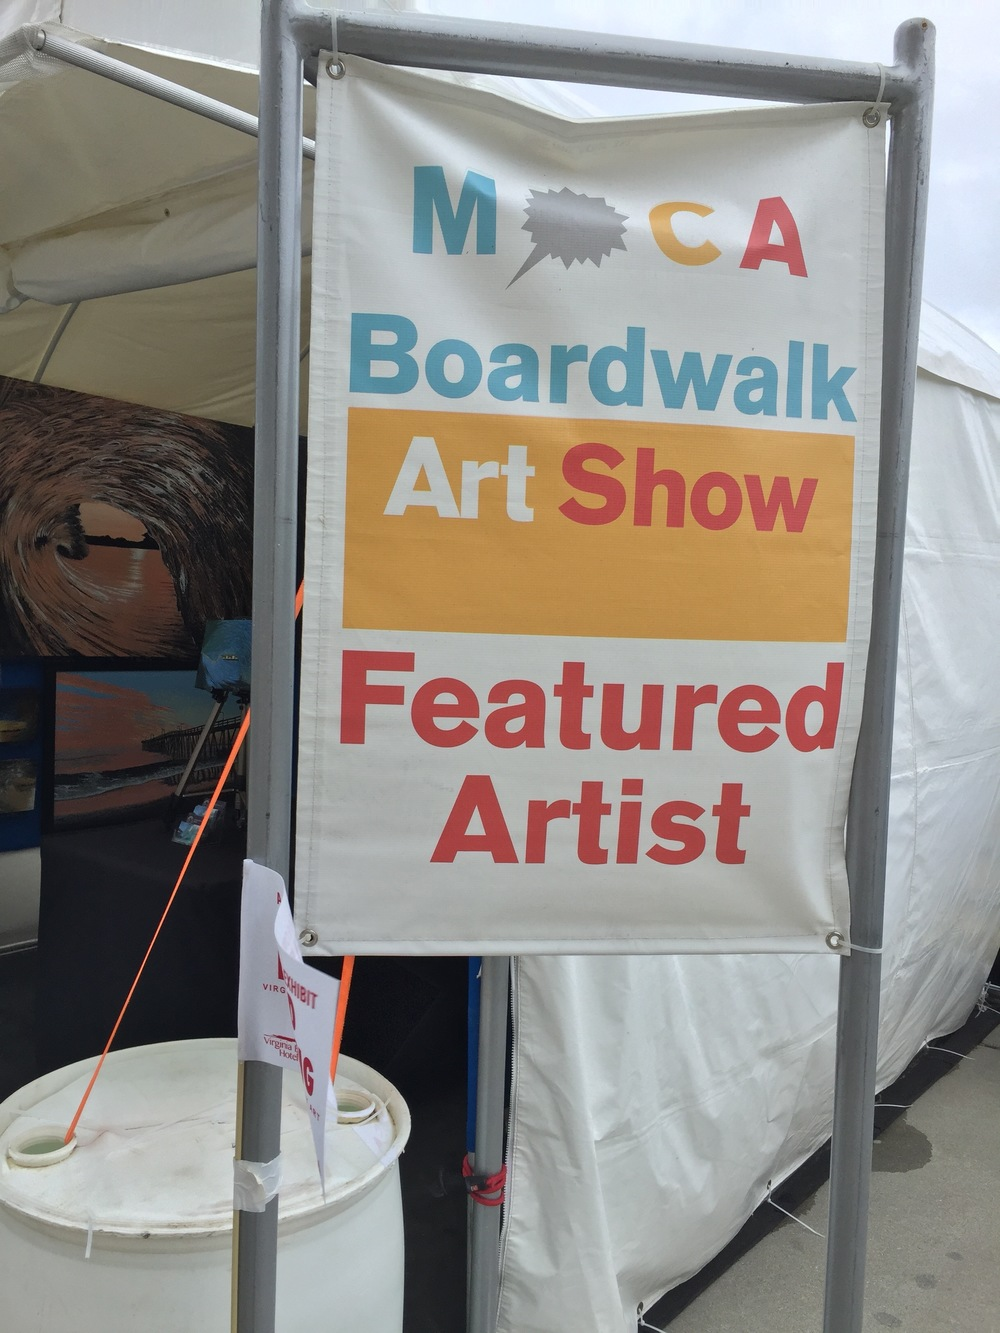 The featured artist sign.  All of T Shirts and Posters with my painting on it sold out for the first time in years according to MOCA.